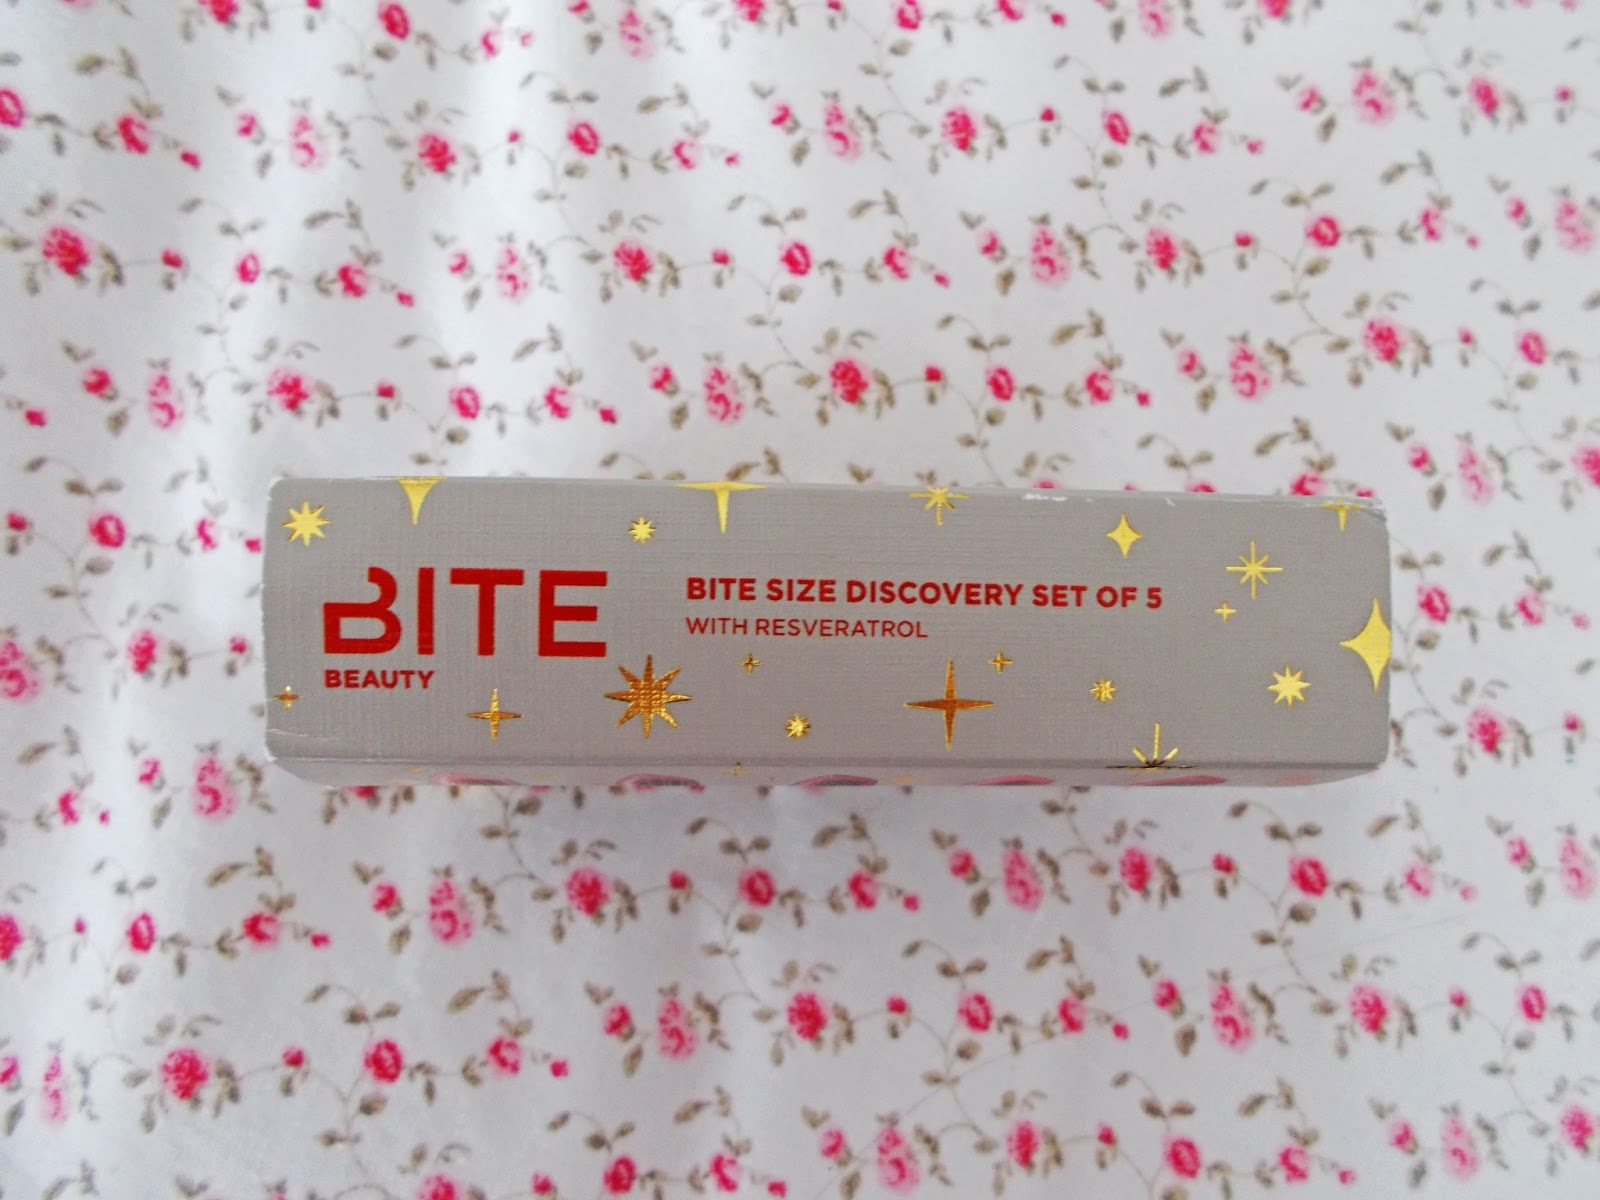 Bite Beauty Discovery Set of 5 lipsticks